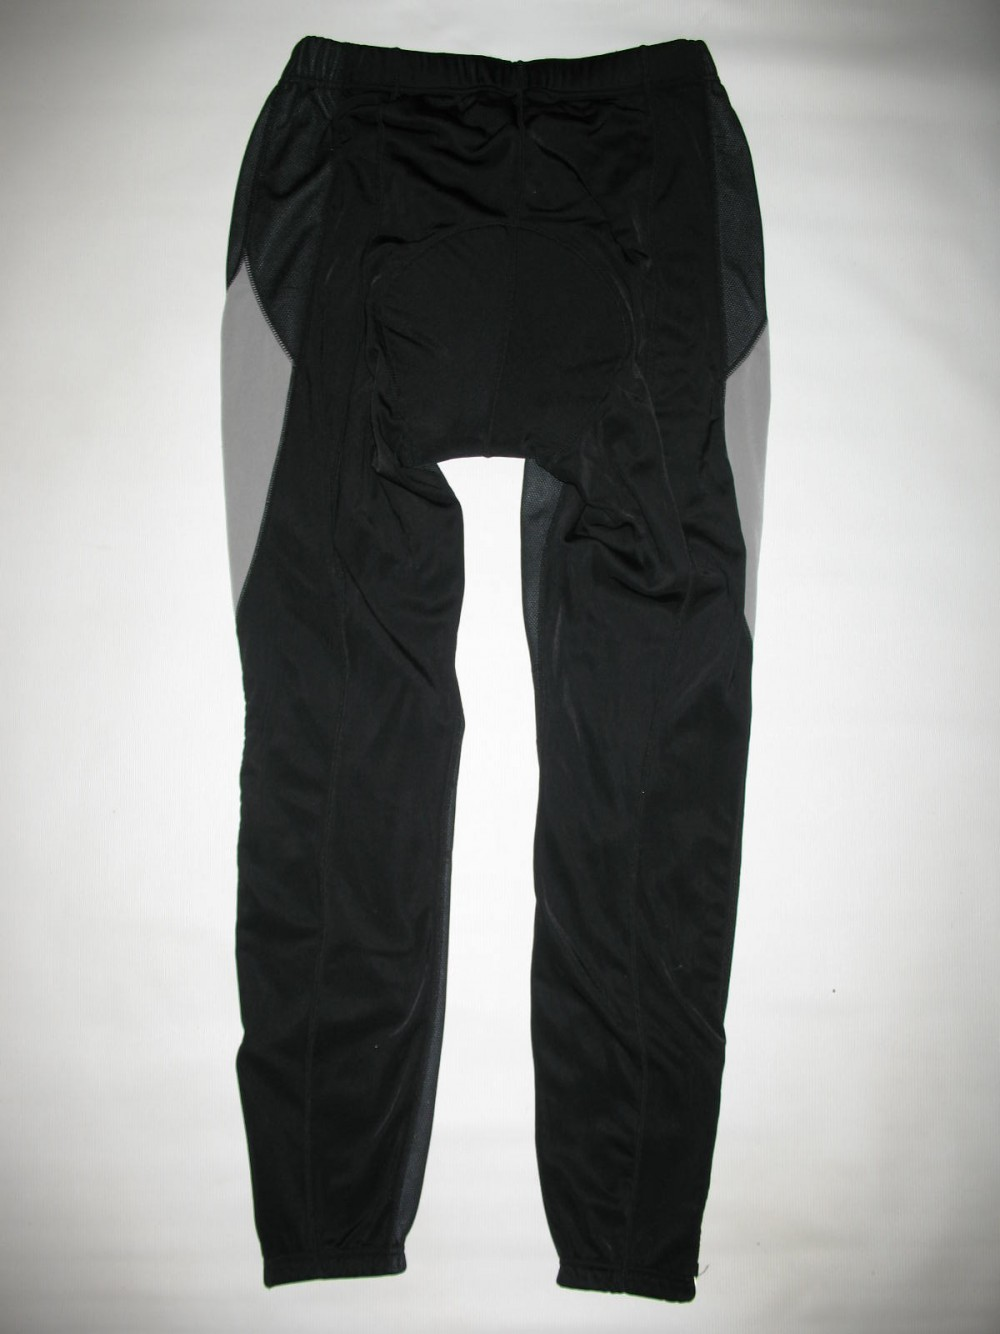 Велобрюки CRANE windstopper cycling pants unisex (размер L) - 2